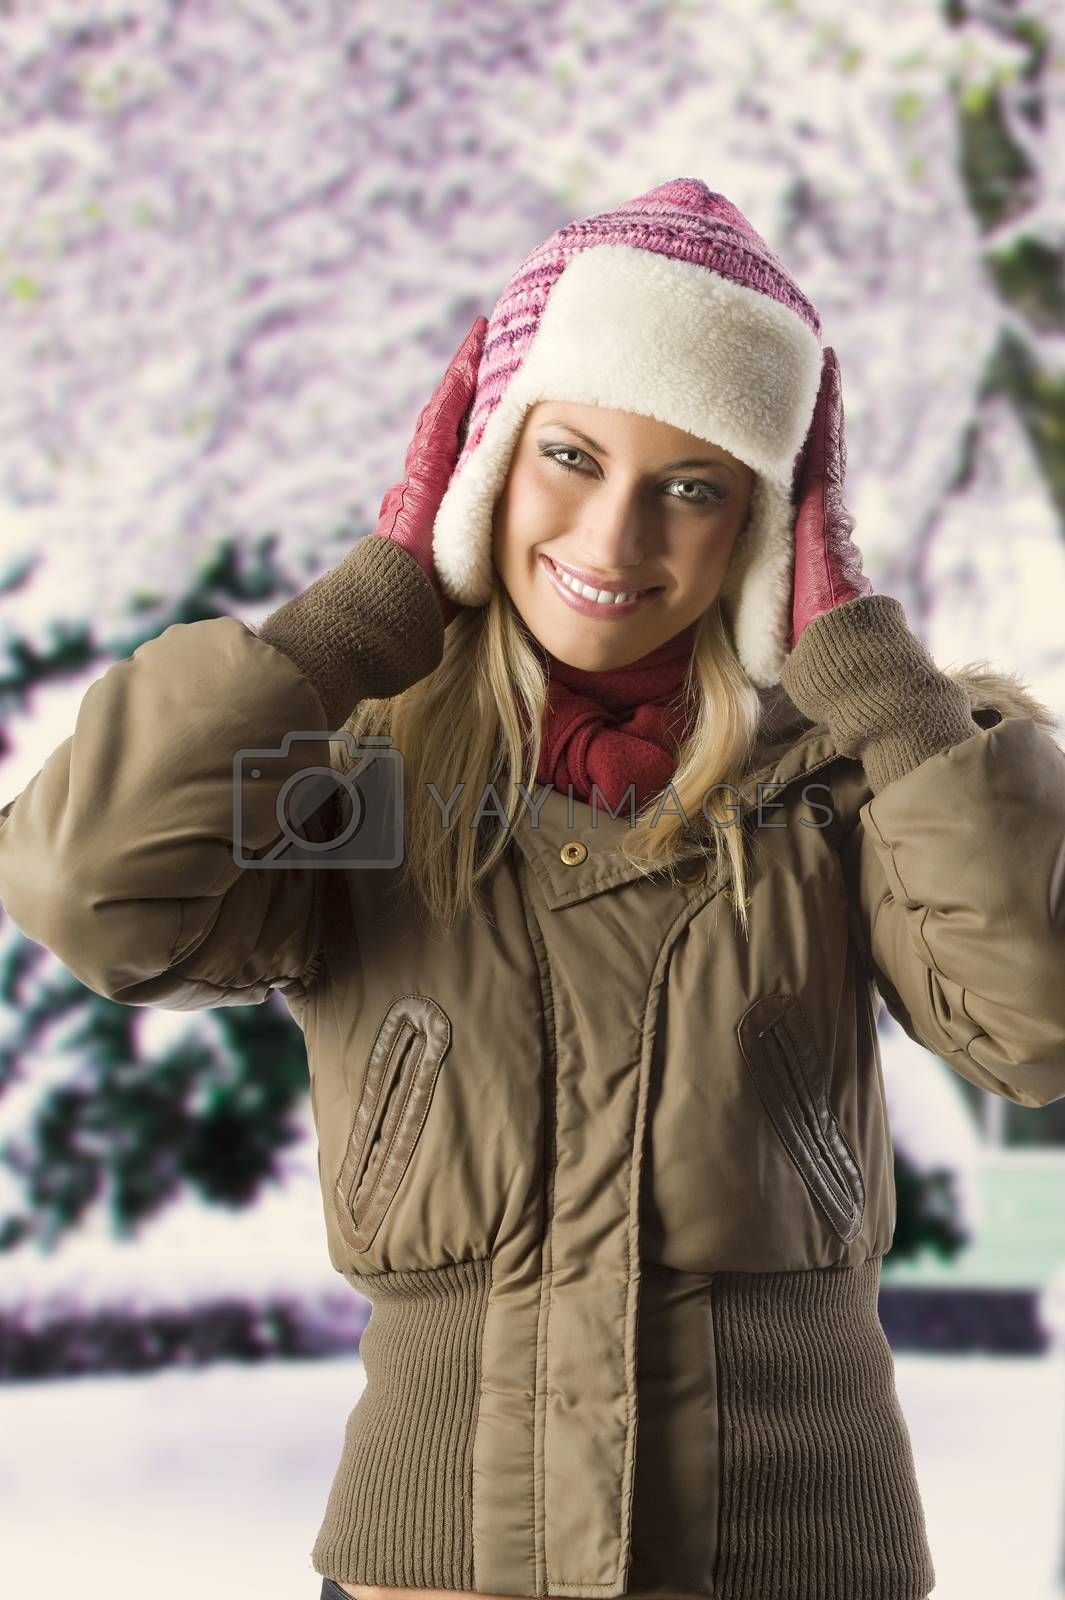 Royalty free image of girl with winter dress by fotoCD